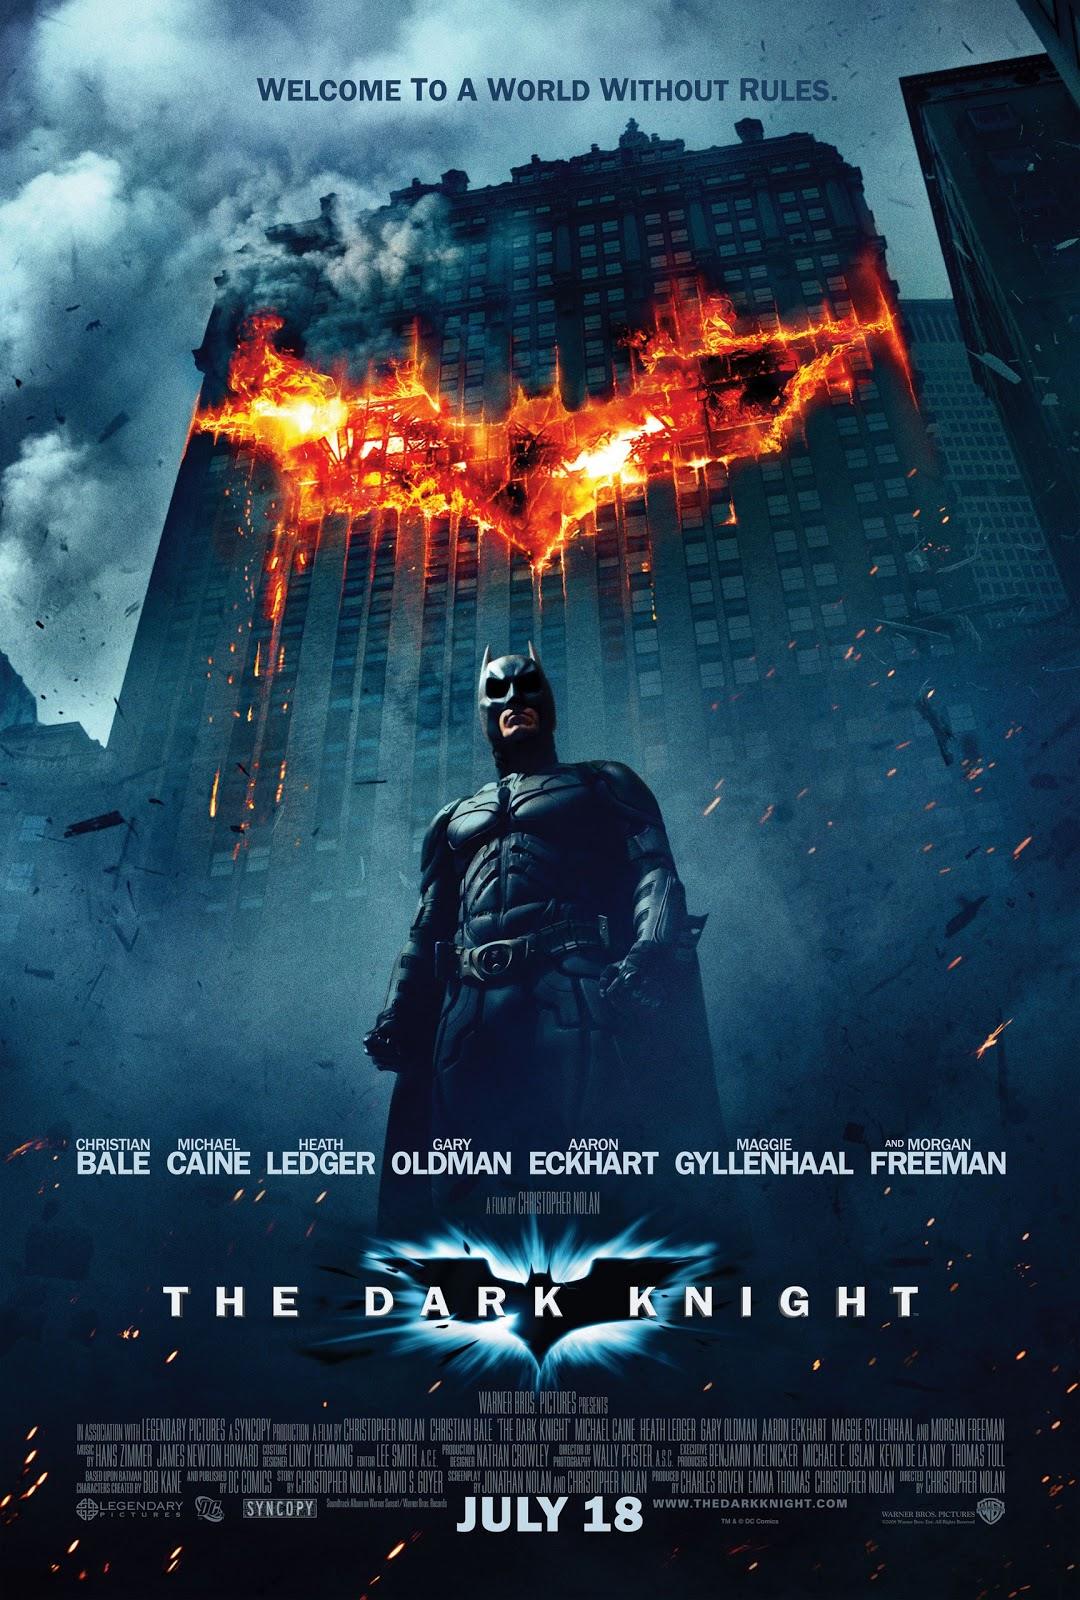 http://3.bp.blogspot.com/-lWKJlkB3mNs/UAYx4mQVHJI/AAAAAAAACus/tiHPAJhY4kU/s1600/the_dark_knight_movie_poster.jpg